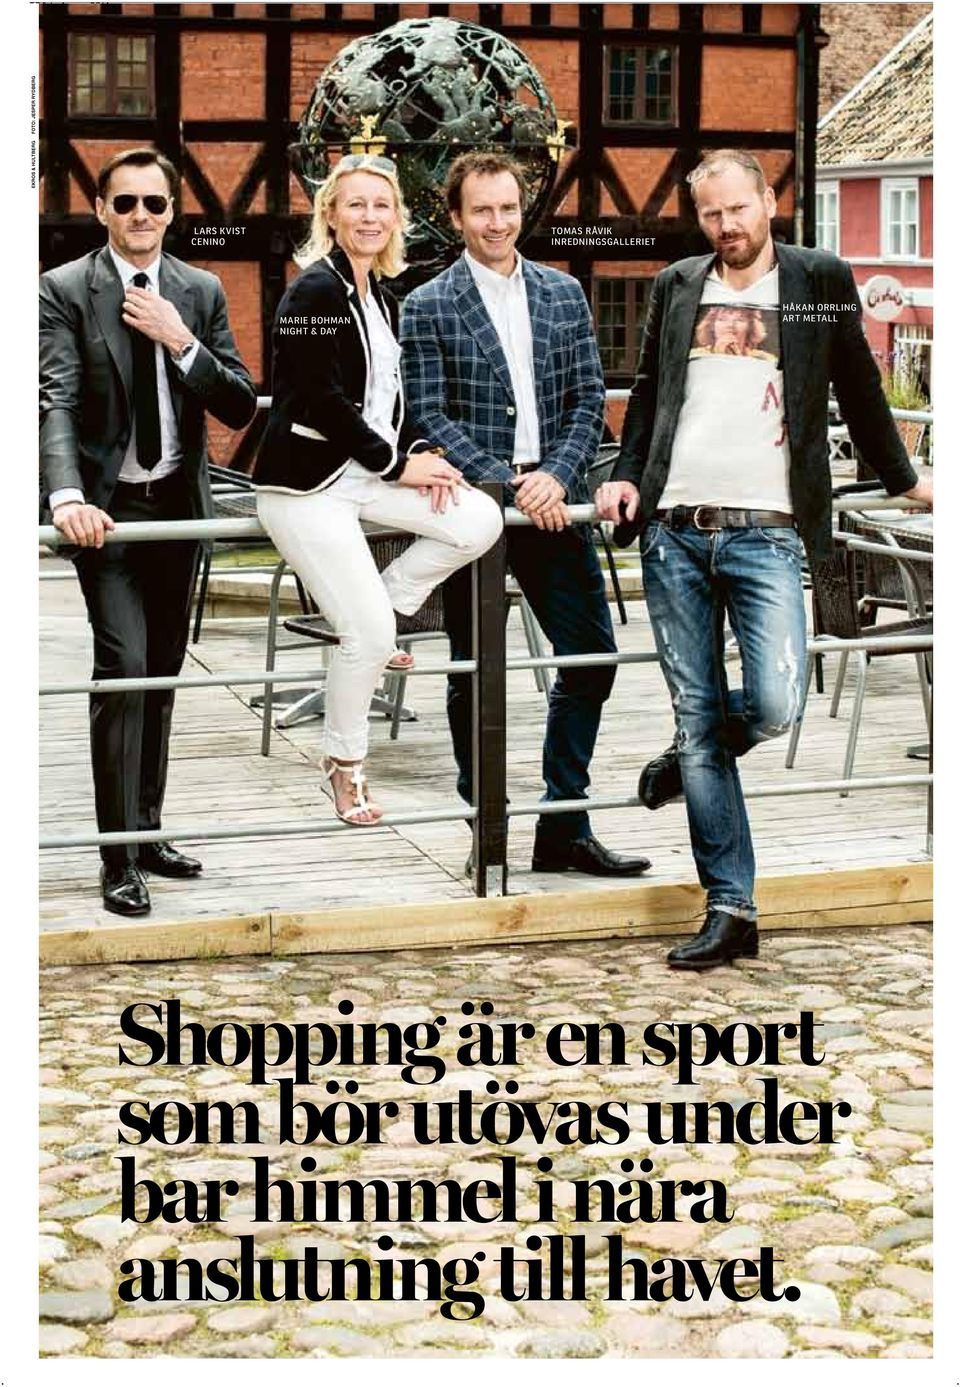 HÅKAN ORRLING ART METALL Shopping är en sport